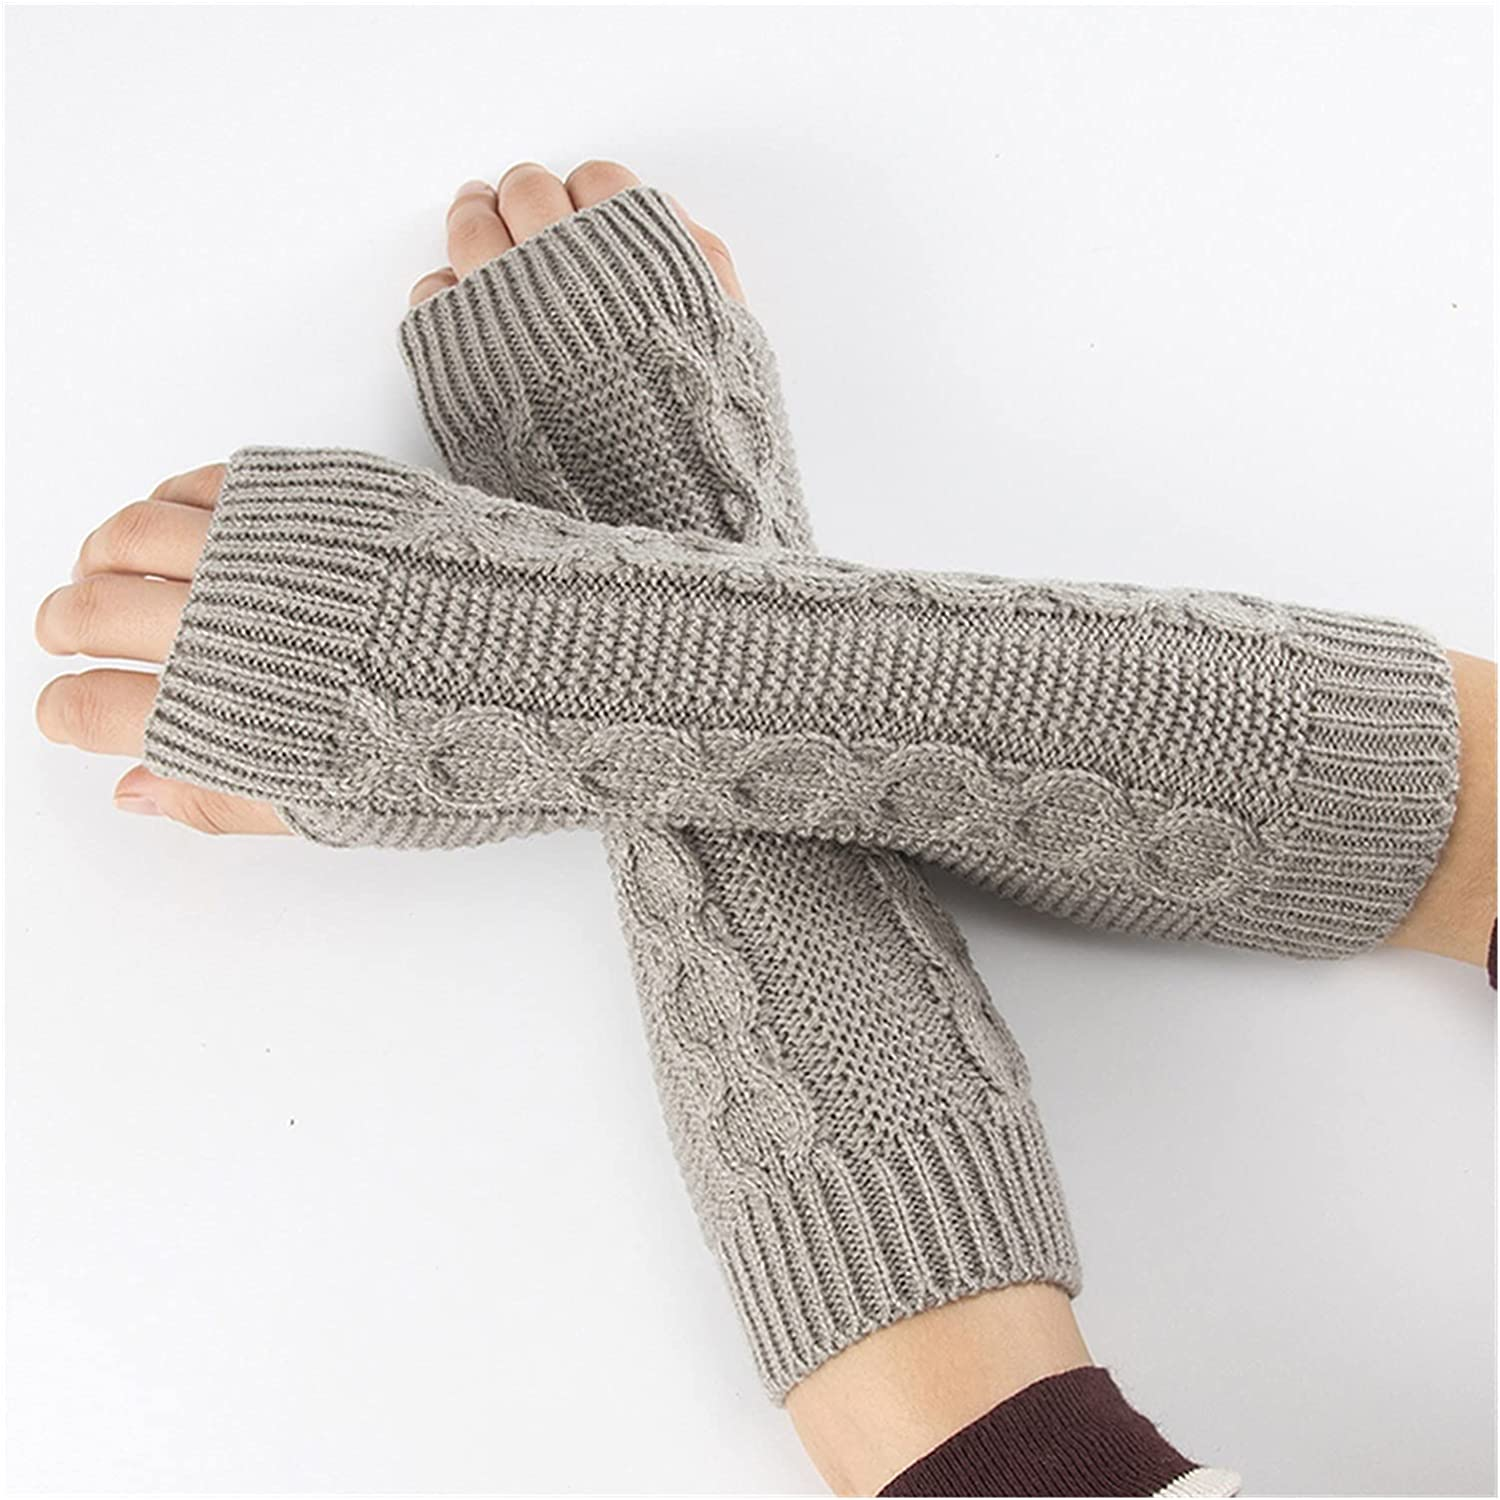 CHHNGPON Bridal Gloves Women Semi-Long Autumn Winter Knitted Gloves Half Fingered Gloves Hand Warmer Girls Soft Mitten Arm Sleeves Glove (Color : F, Size : One Size)